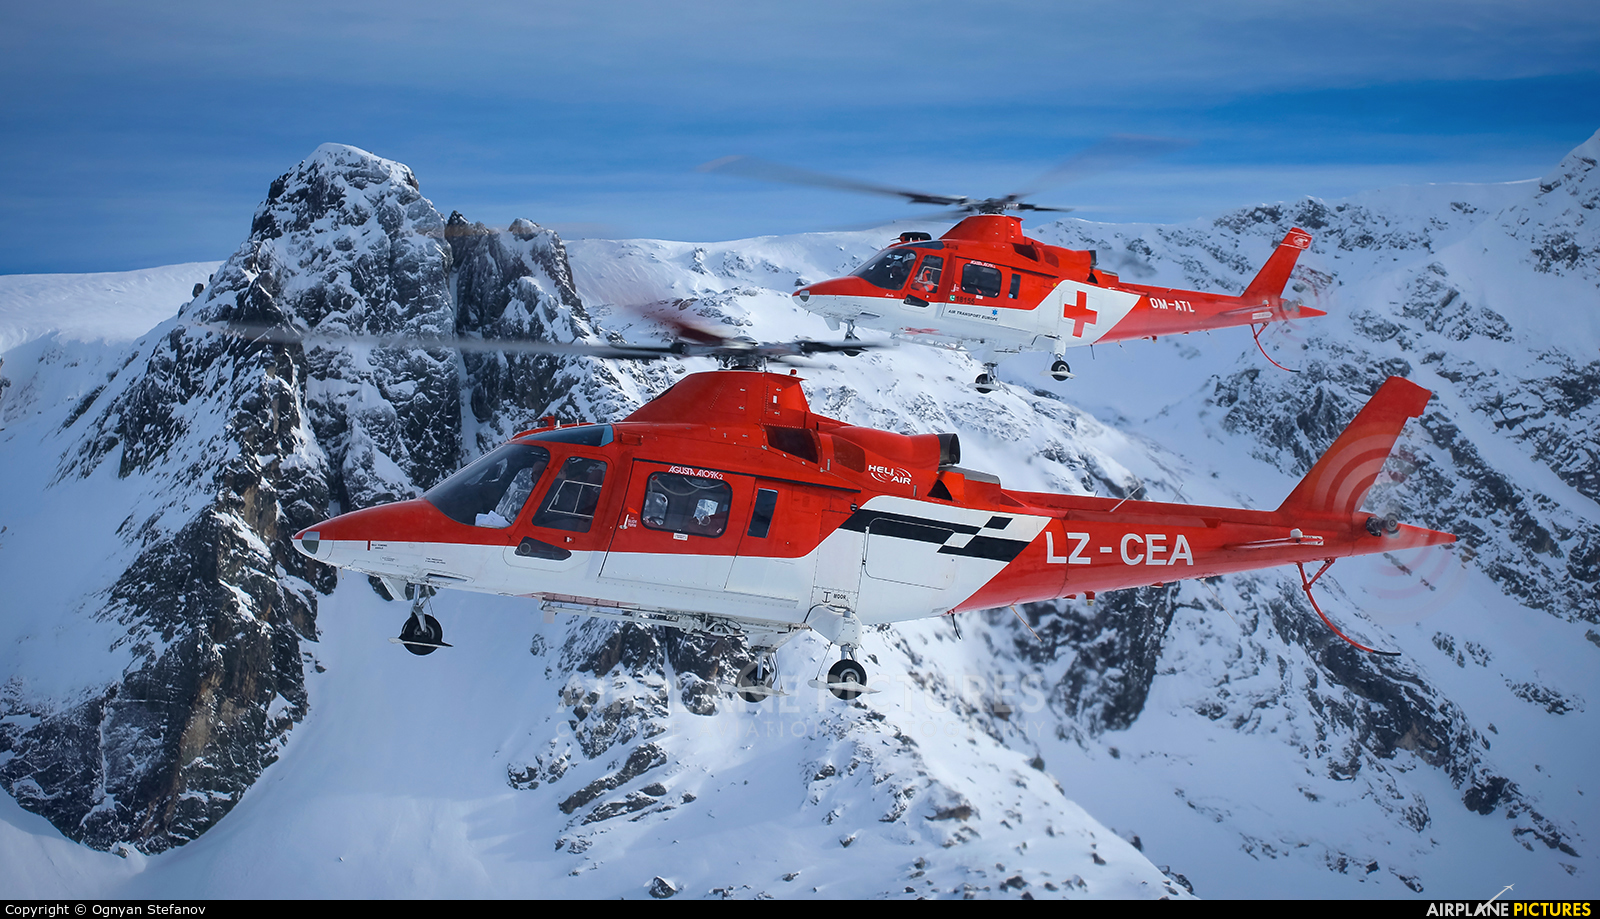 Heli Air Services LZ-CEA aircraft at In Flight - Bulgaria